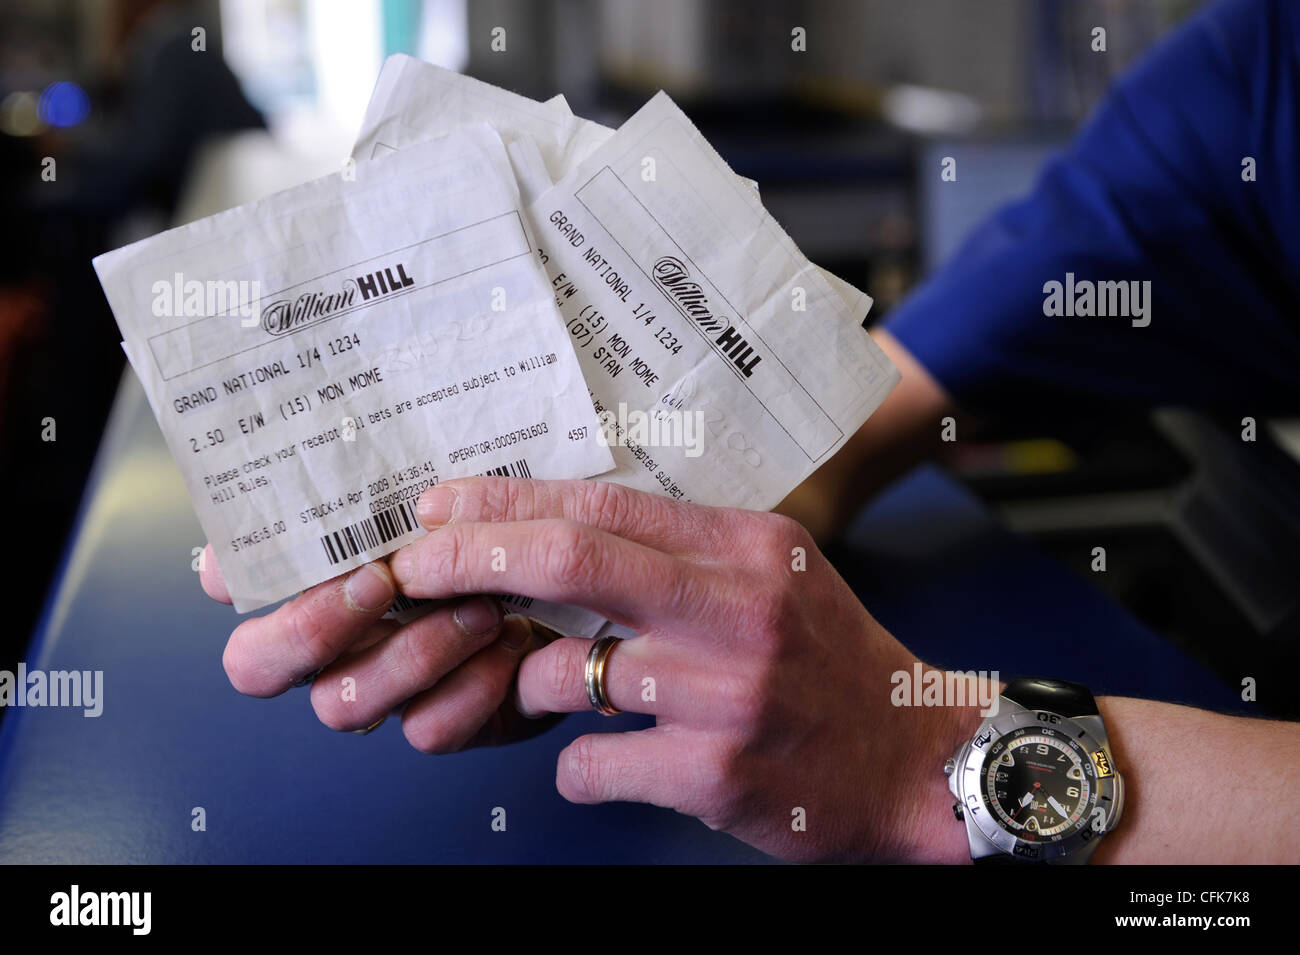 A bunch of winning betting slips at the Ross-on-Wye branch of the bookmakers William Hill which is close to the - Stock Image